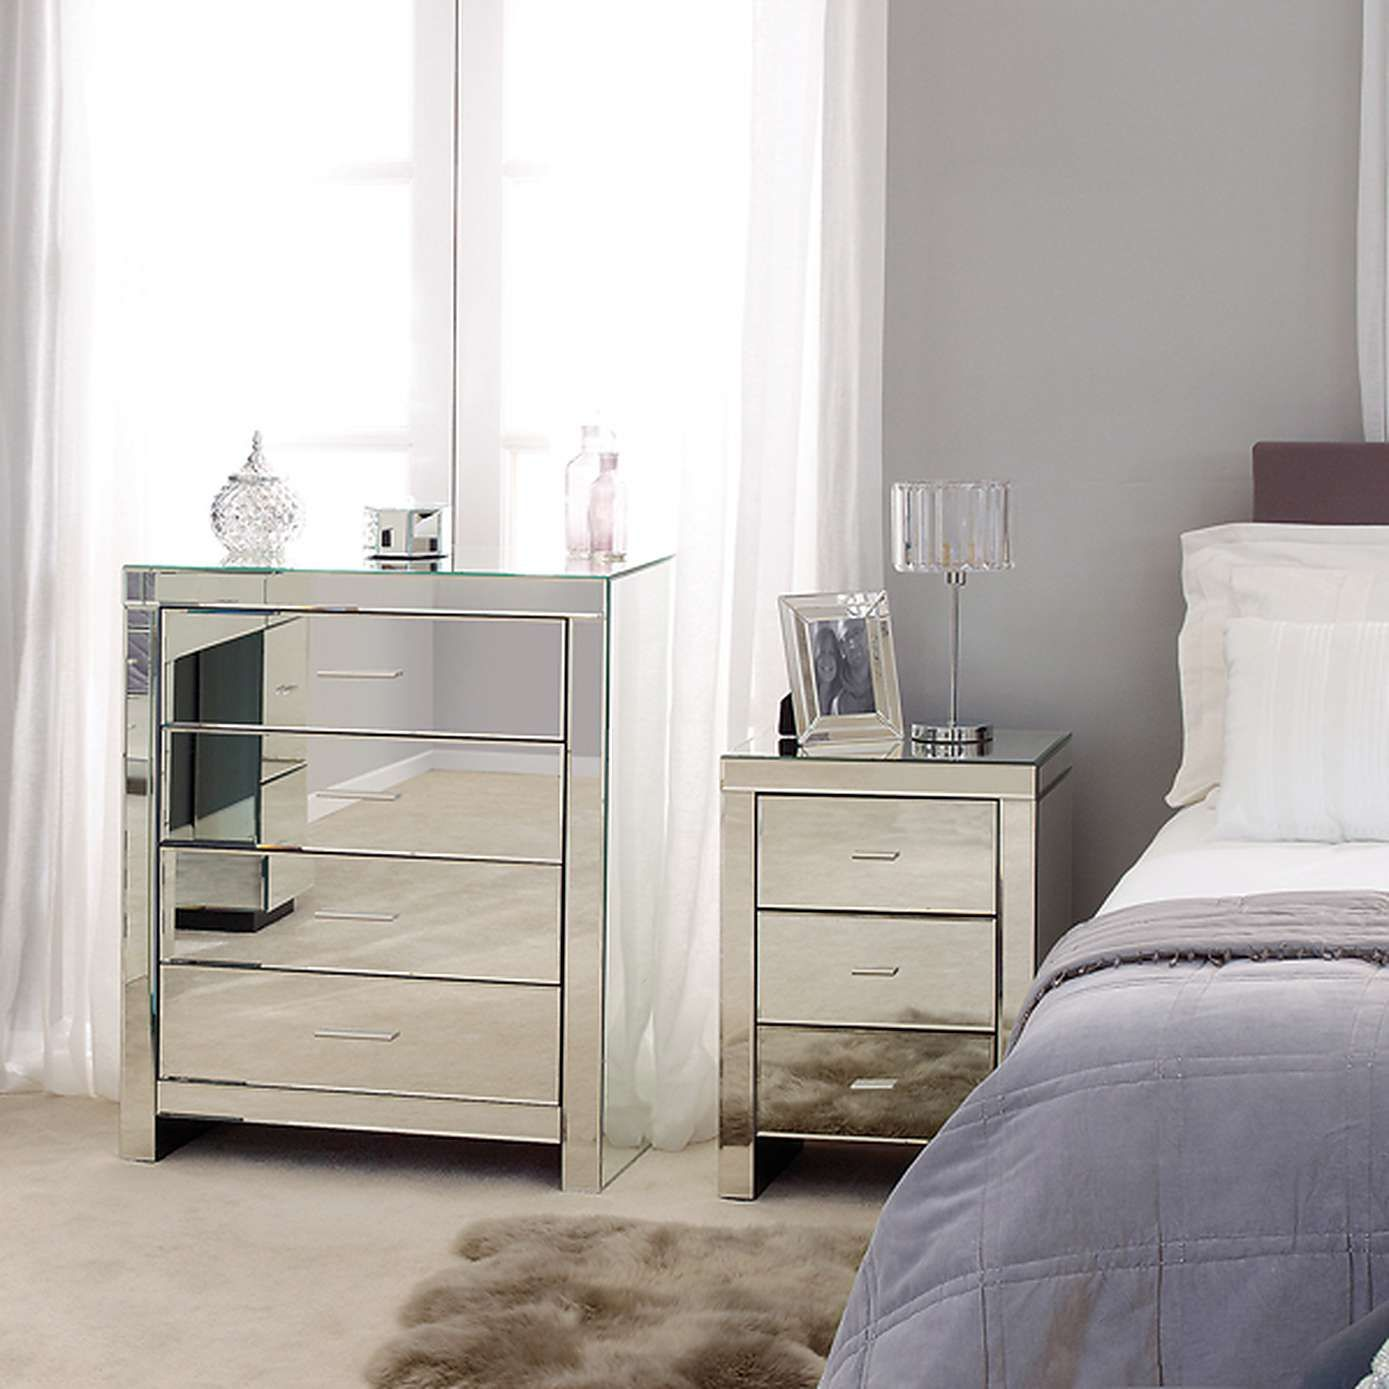 Venetian Mirrored Bedroom Furniture CollectionDunelmHome